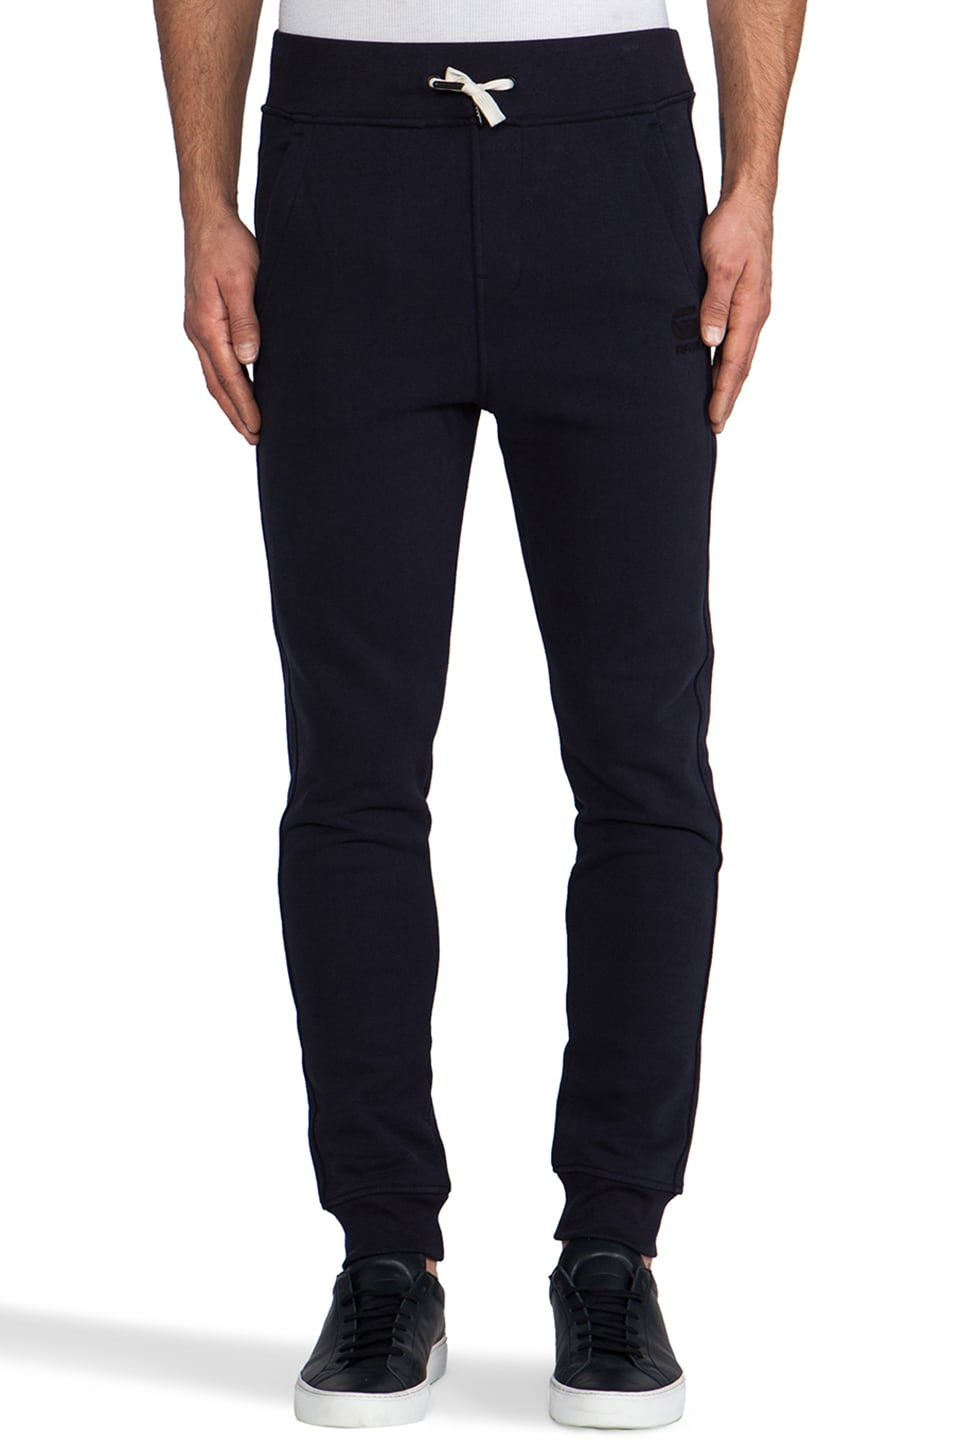 G-Star Navy Raw Sweatpant in Mazarine Blue